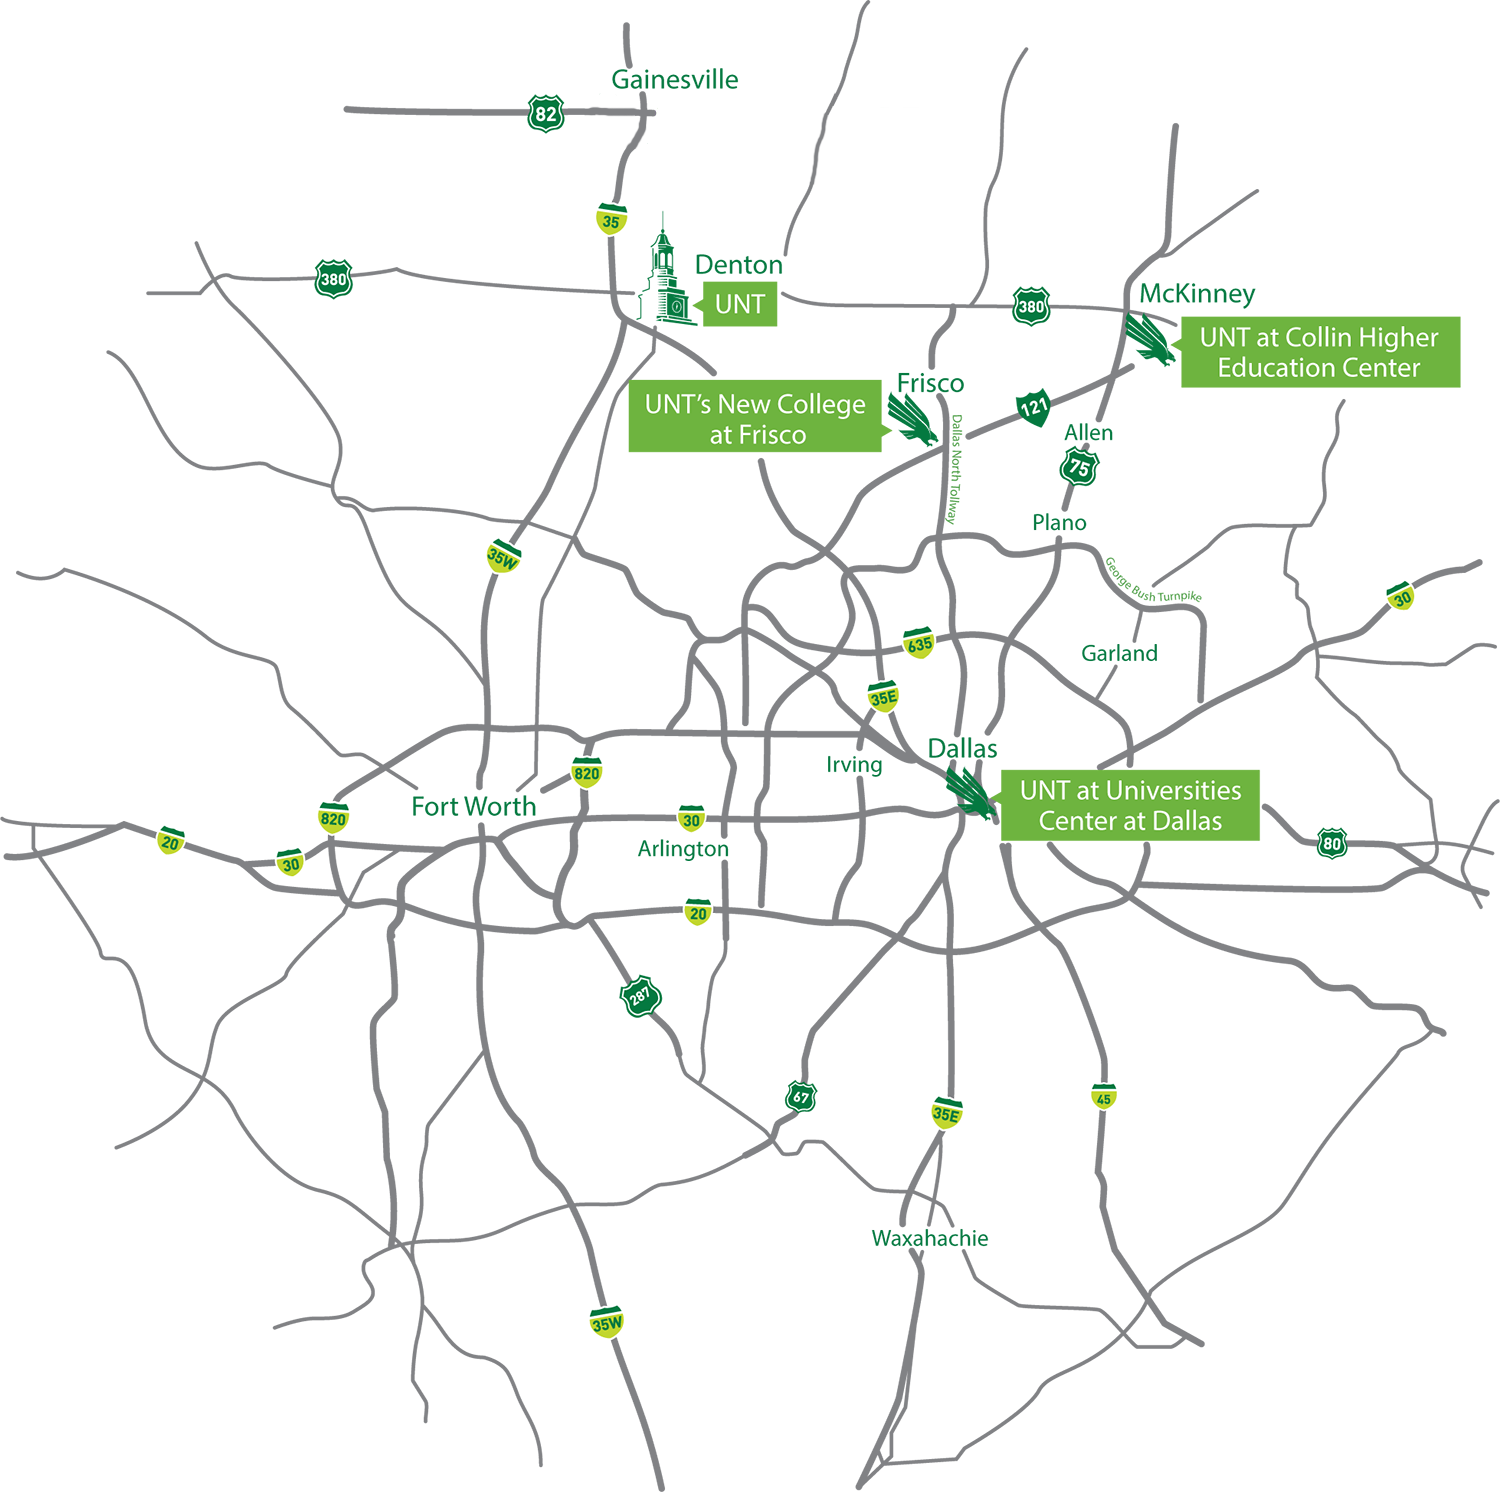 Denton Ohio Map.Unt Locations University Of North Texas